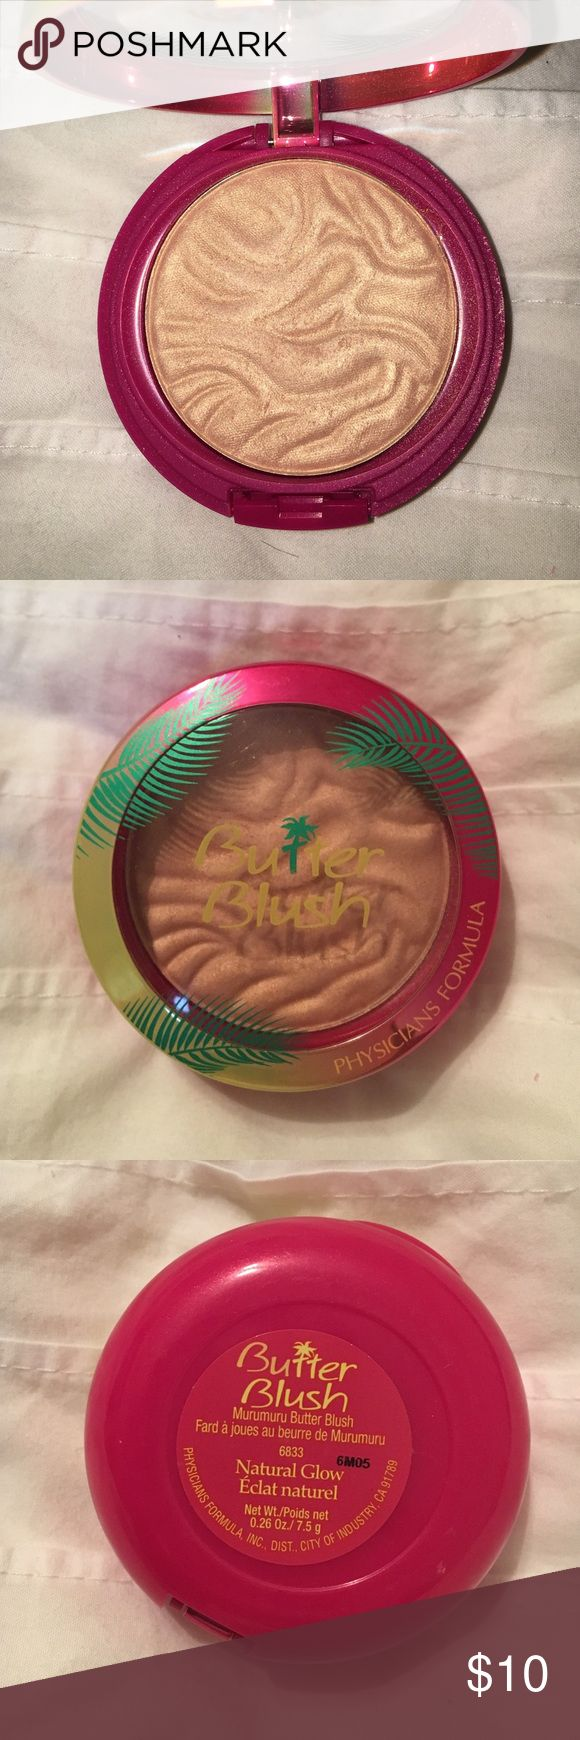 Physicians formula blush Butter blush by physicians formula in the shade natural glow. Super pretty color for summer and smells amazing. I used it once Physicians Formula Makeup Blush